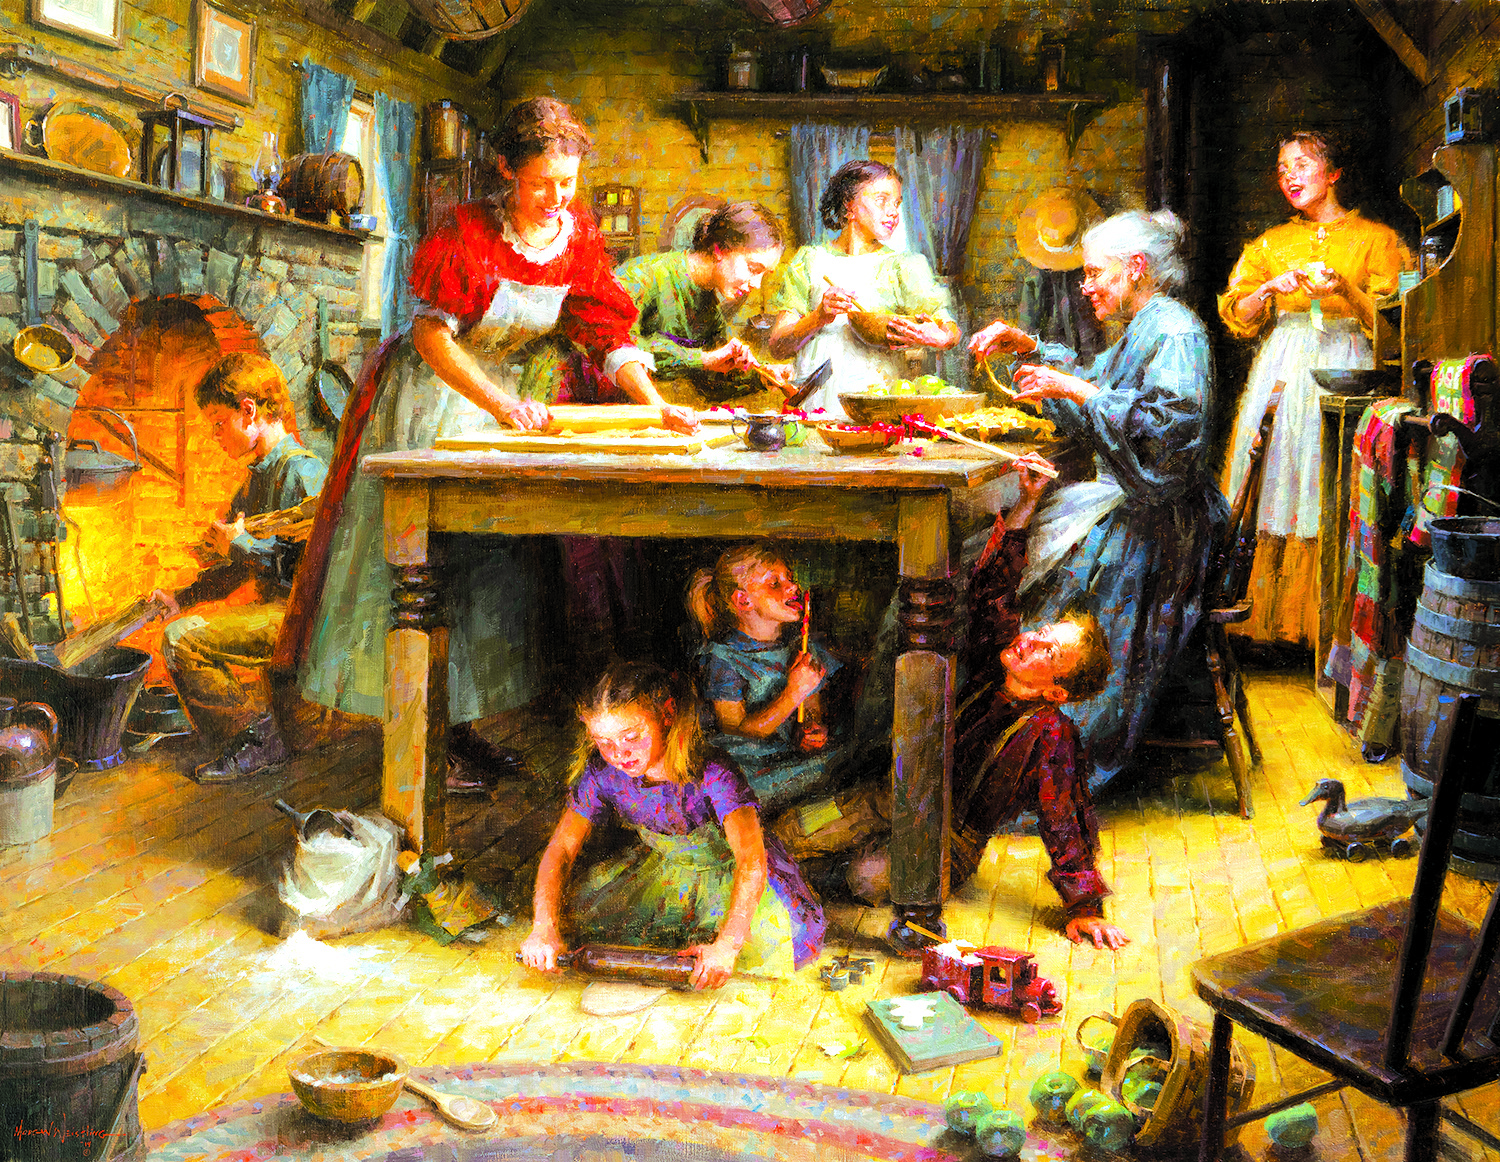 Family Traditions 1000+ pc Jigsaw Puzzle by SunsOut